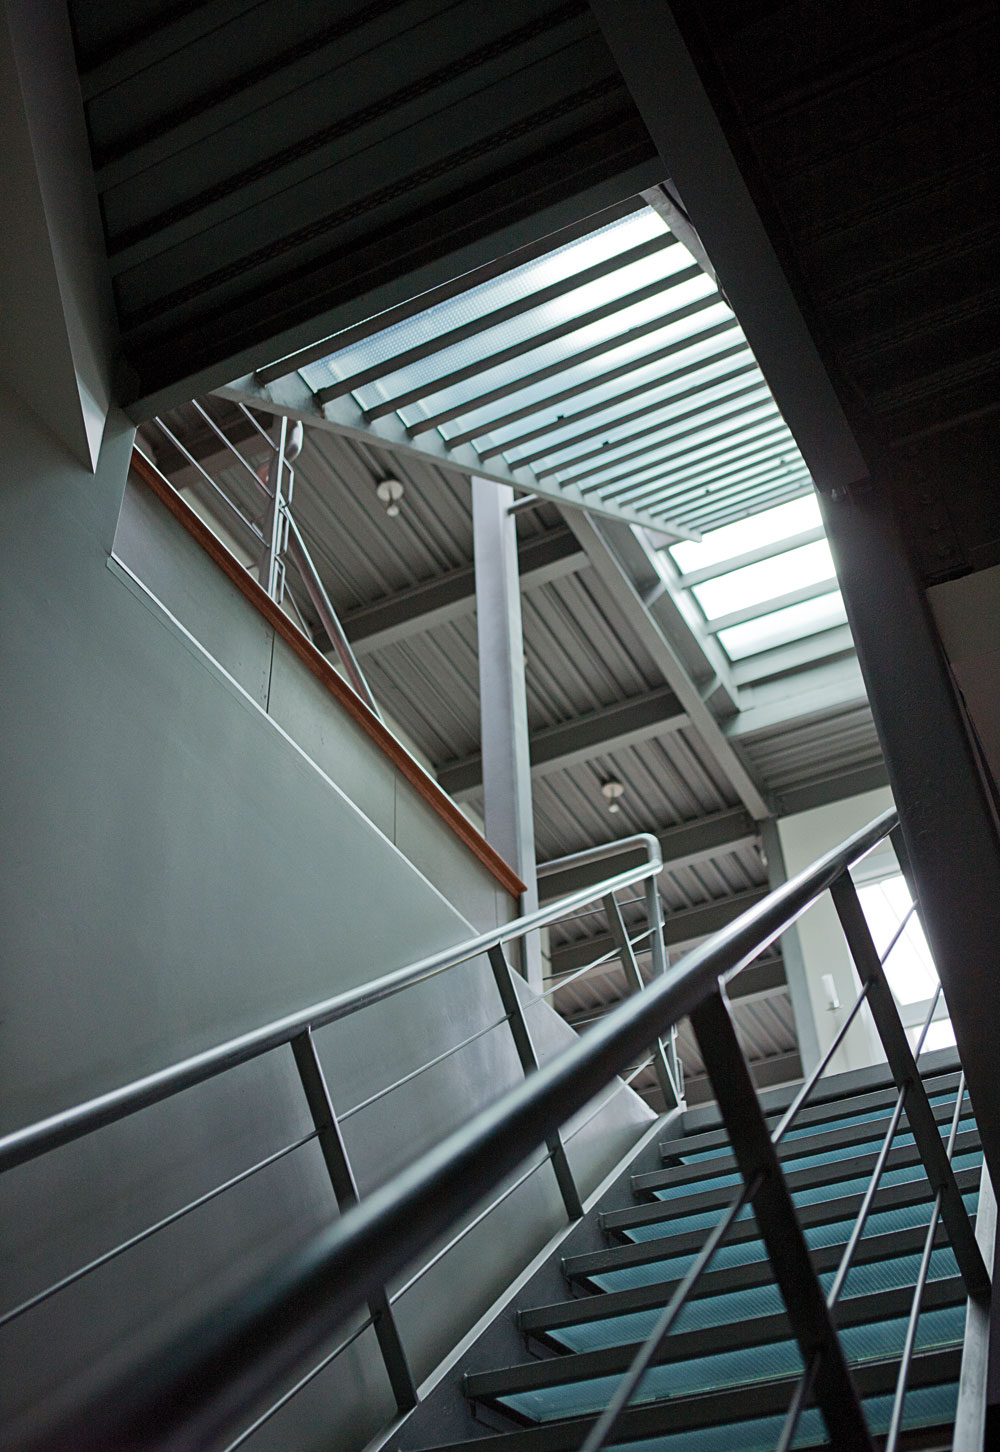 The stairs should have been stainless steel, said the owner, but cost was in the six figures. They are made of steel, like the ceiling and other elements of the house. Note the steps made of tempered glass without risers.